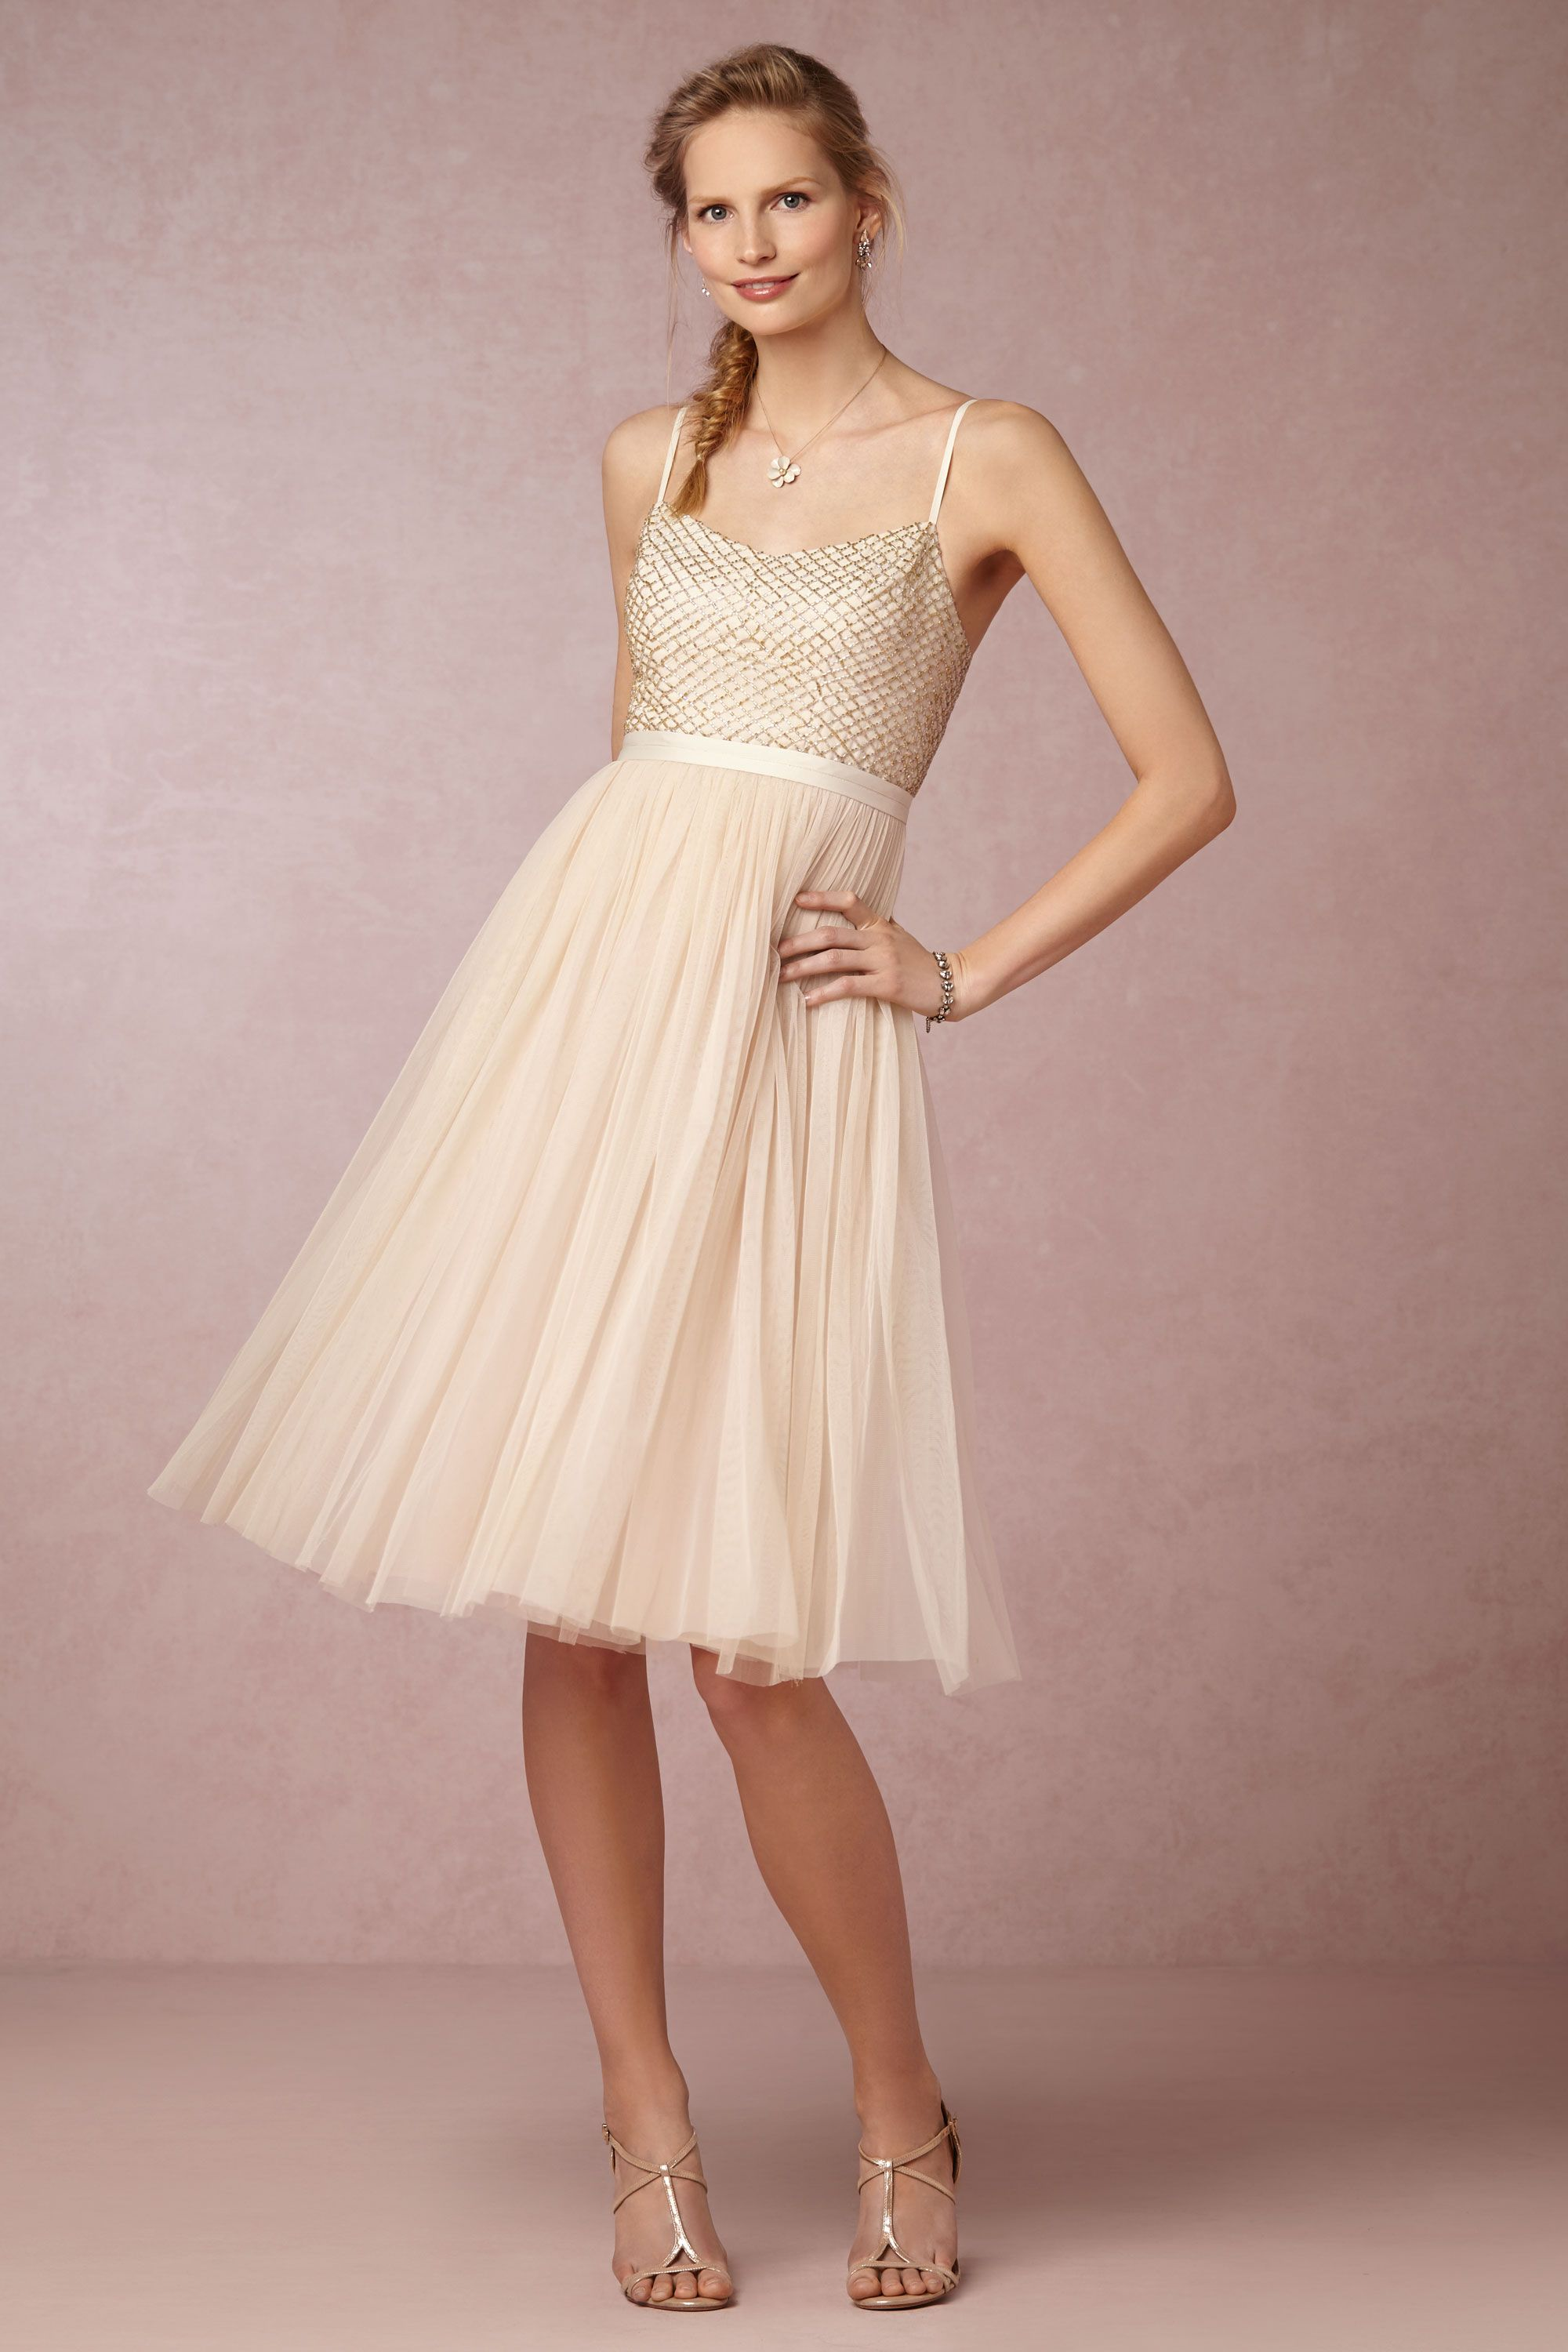 Coppelia Ballet Dress